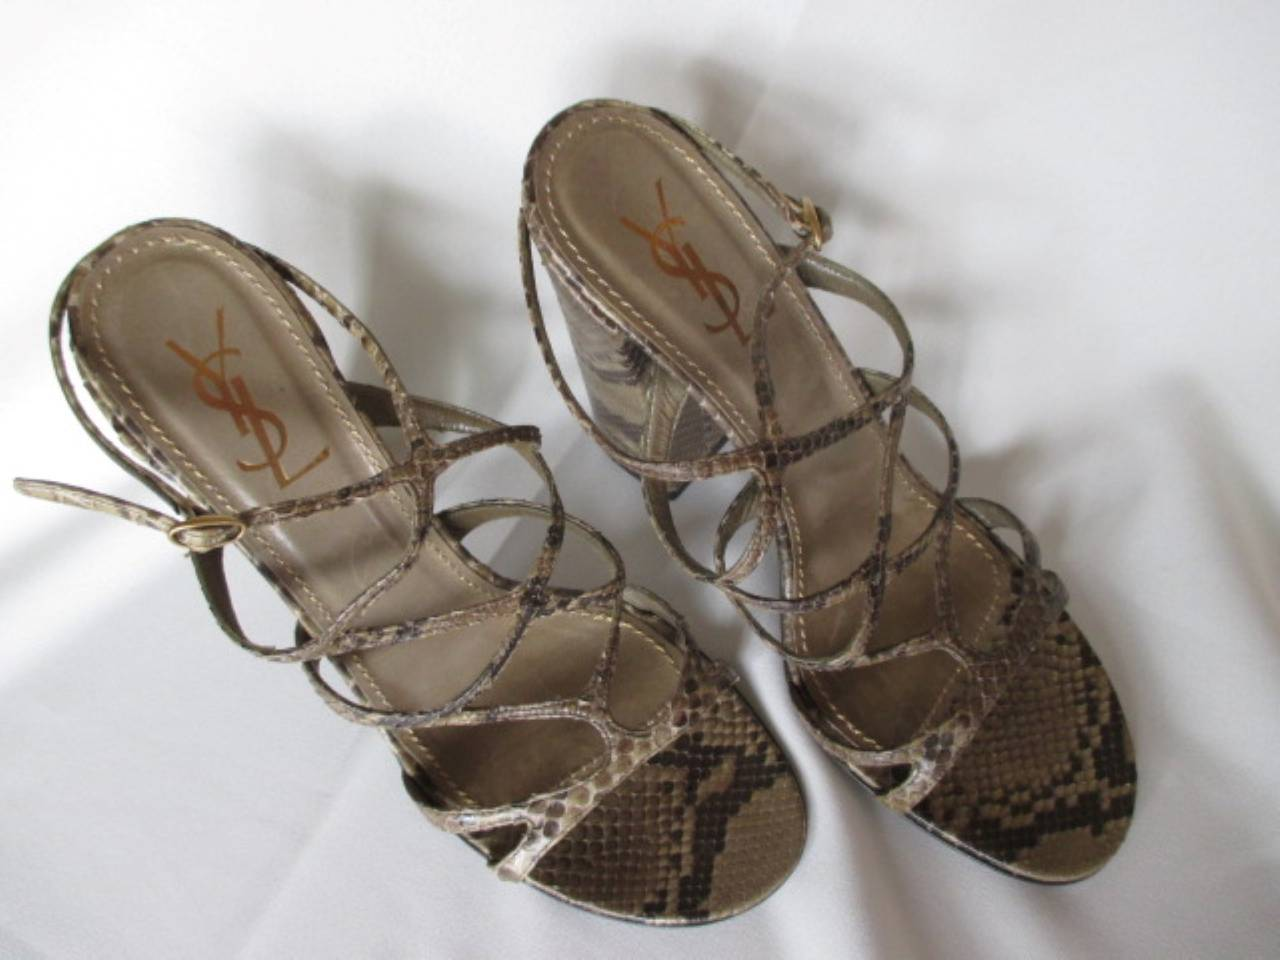 Almost new YSL summer shoes worn a few times and in good condition made from leather snake.